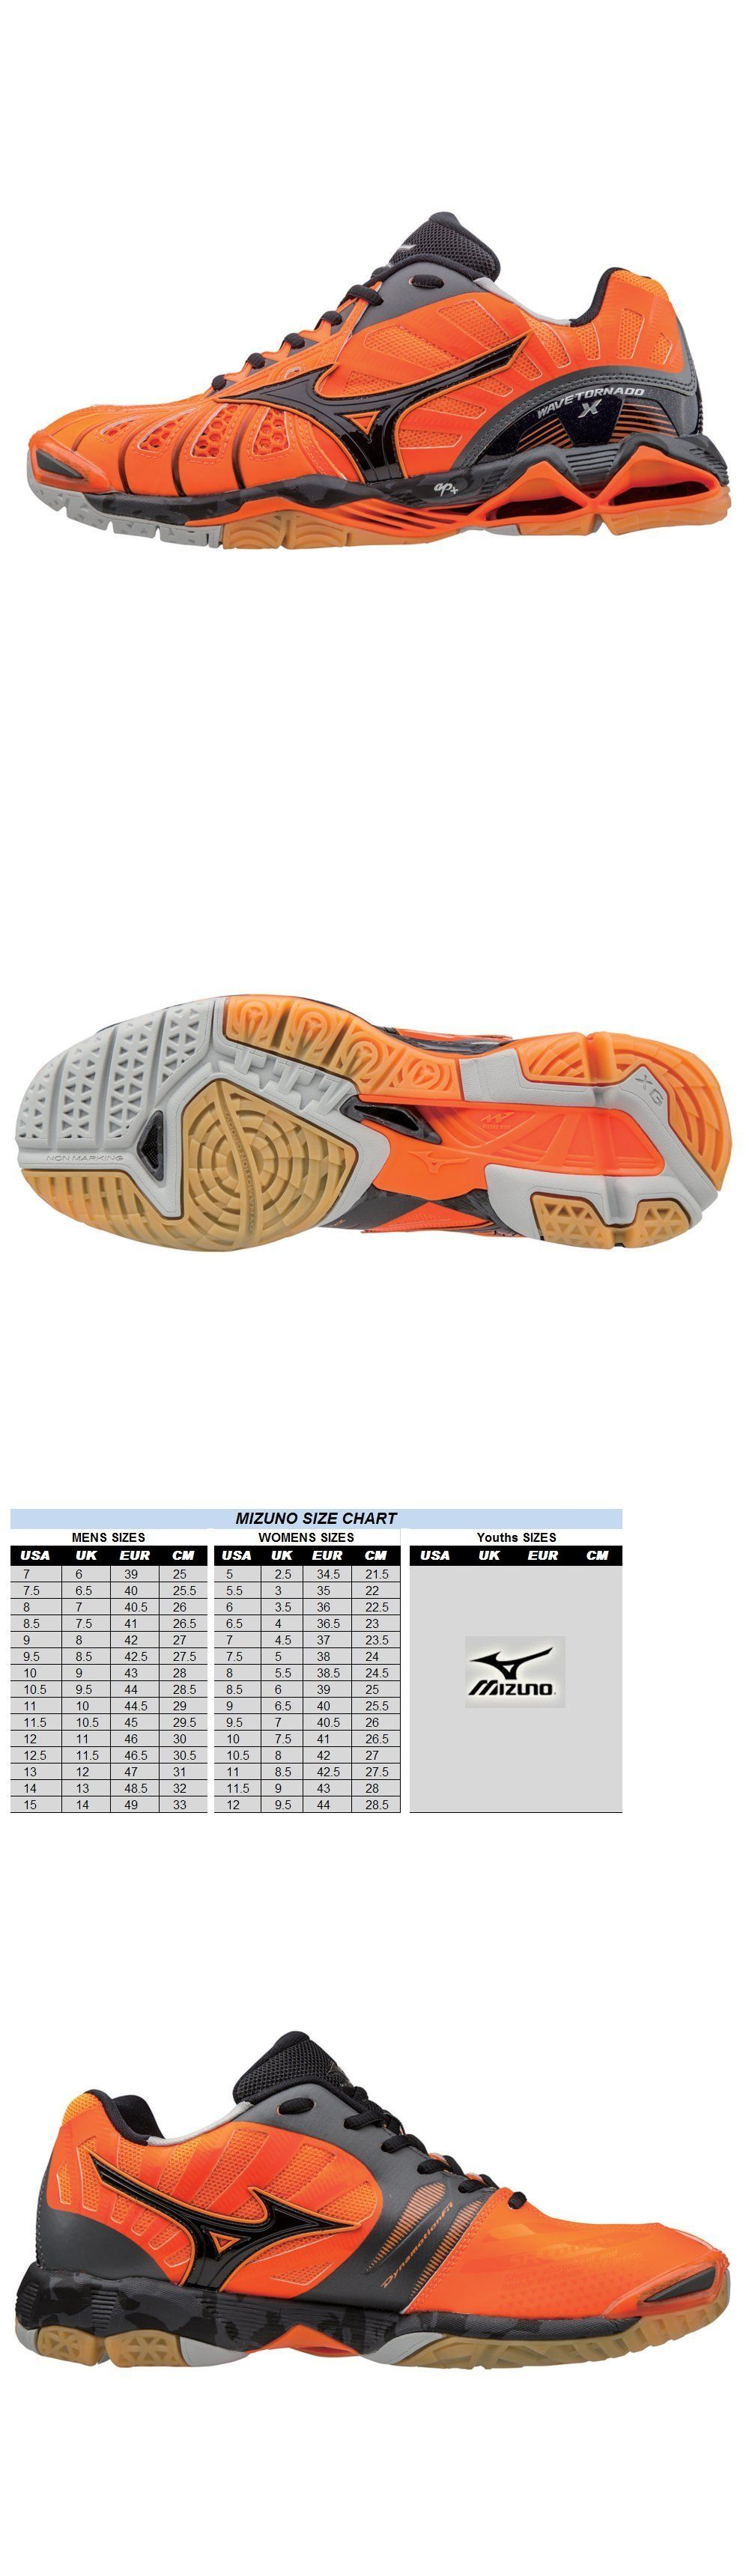 Clothing 159130 Mizuno Mens Wave Tornado X Volleyball Shoes Orange And Black 430201 Buy It Now Only 12 Best Volleyball Shoes Volleyball Shoes Shoes Mens